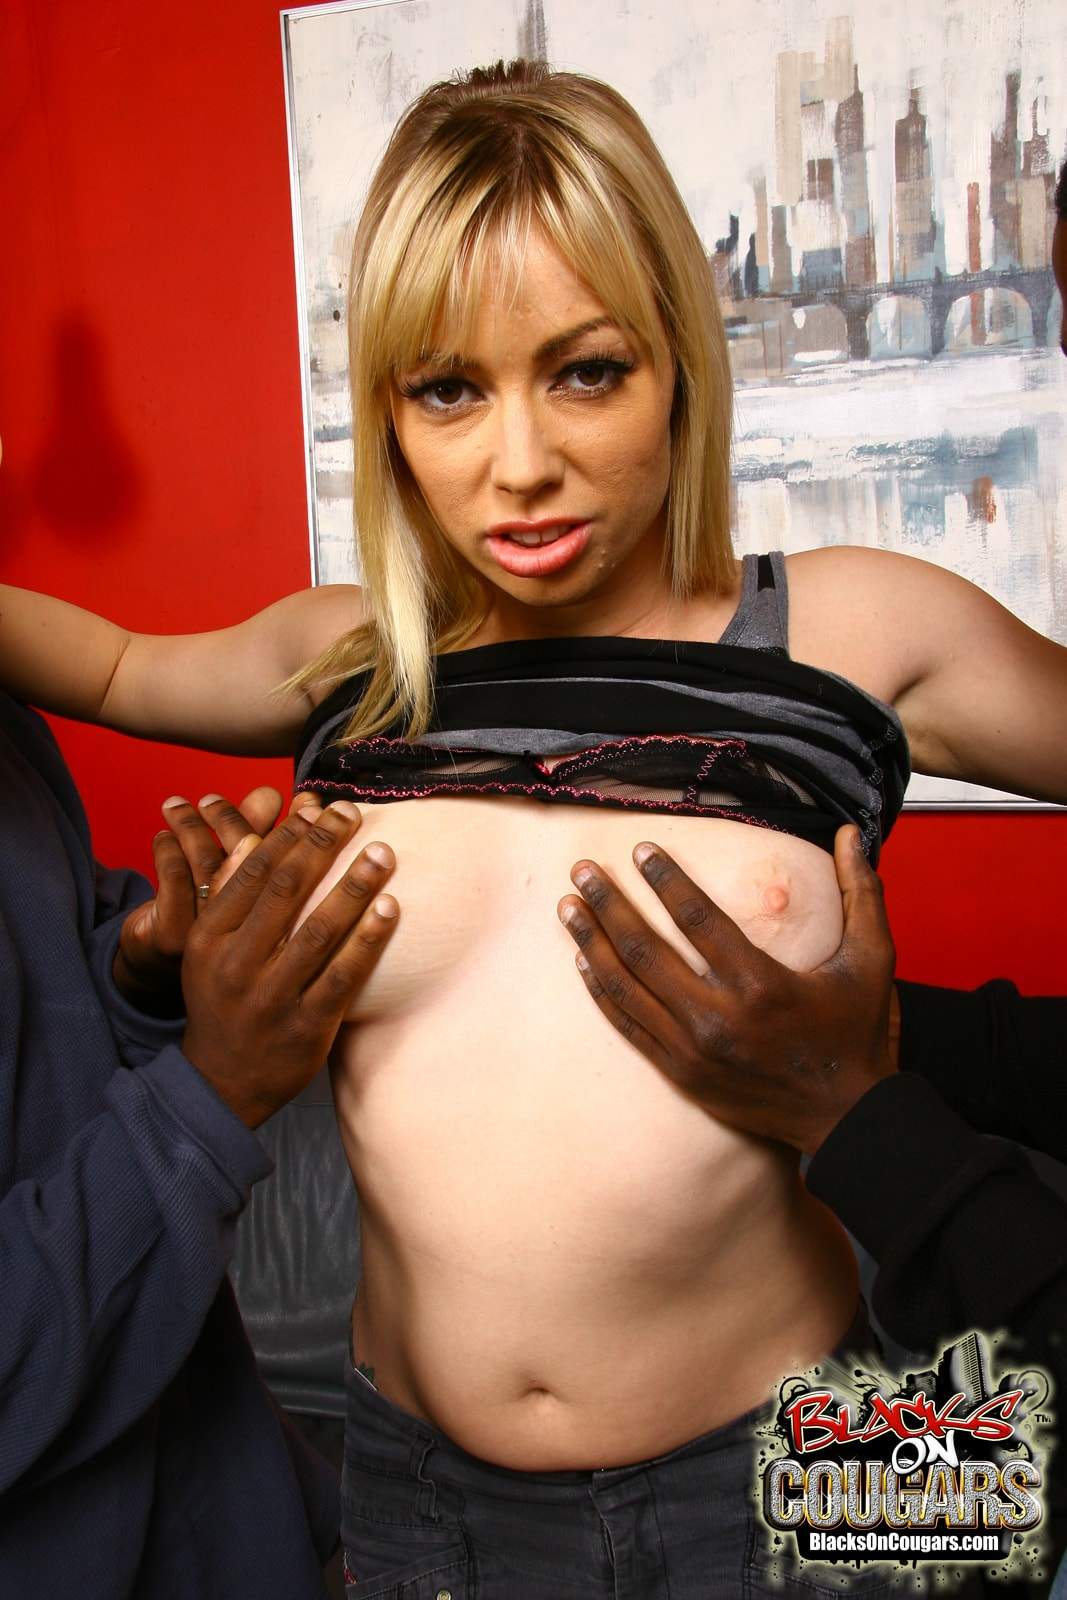 Dogfart '- Blacks On Cougars' starring Adrianna Nicole (Photo 18)